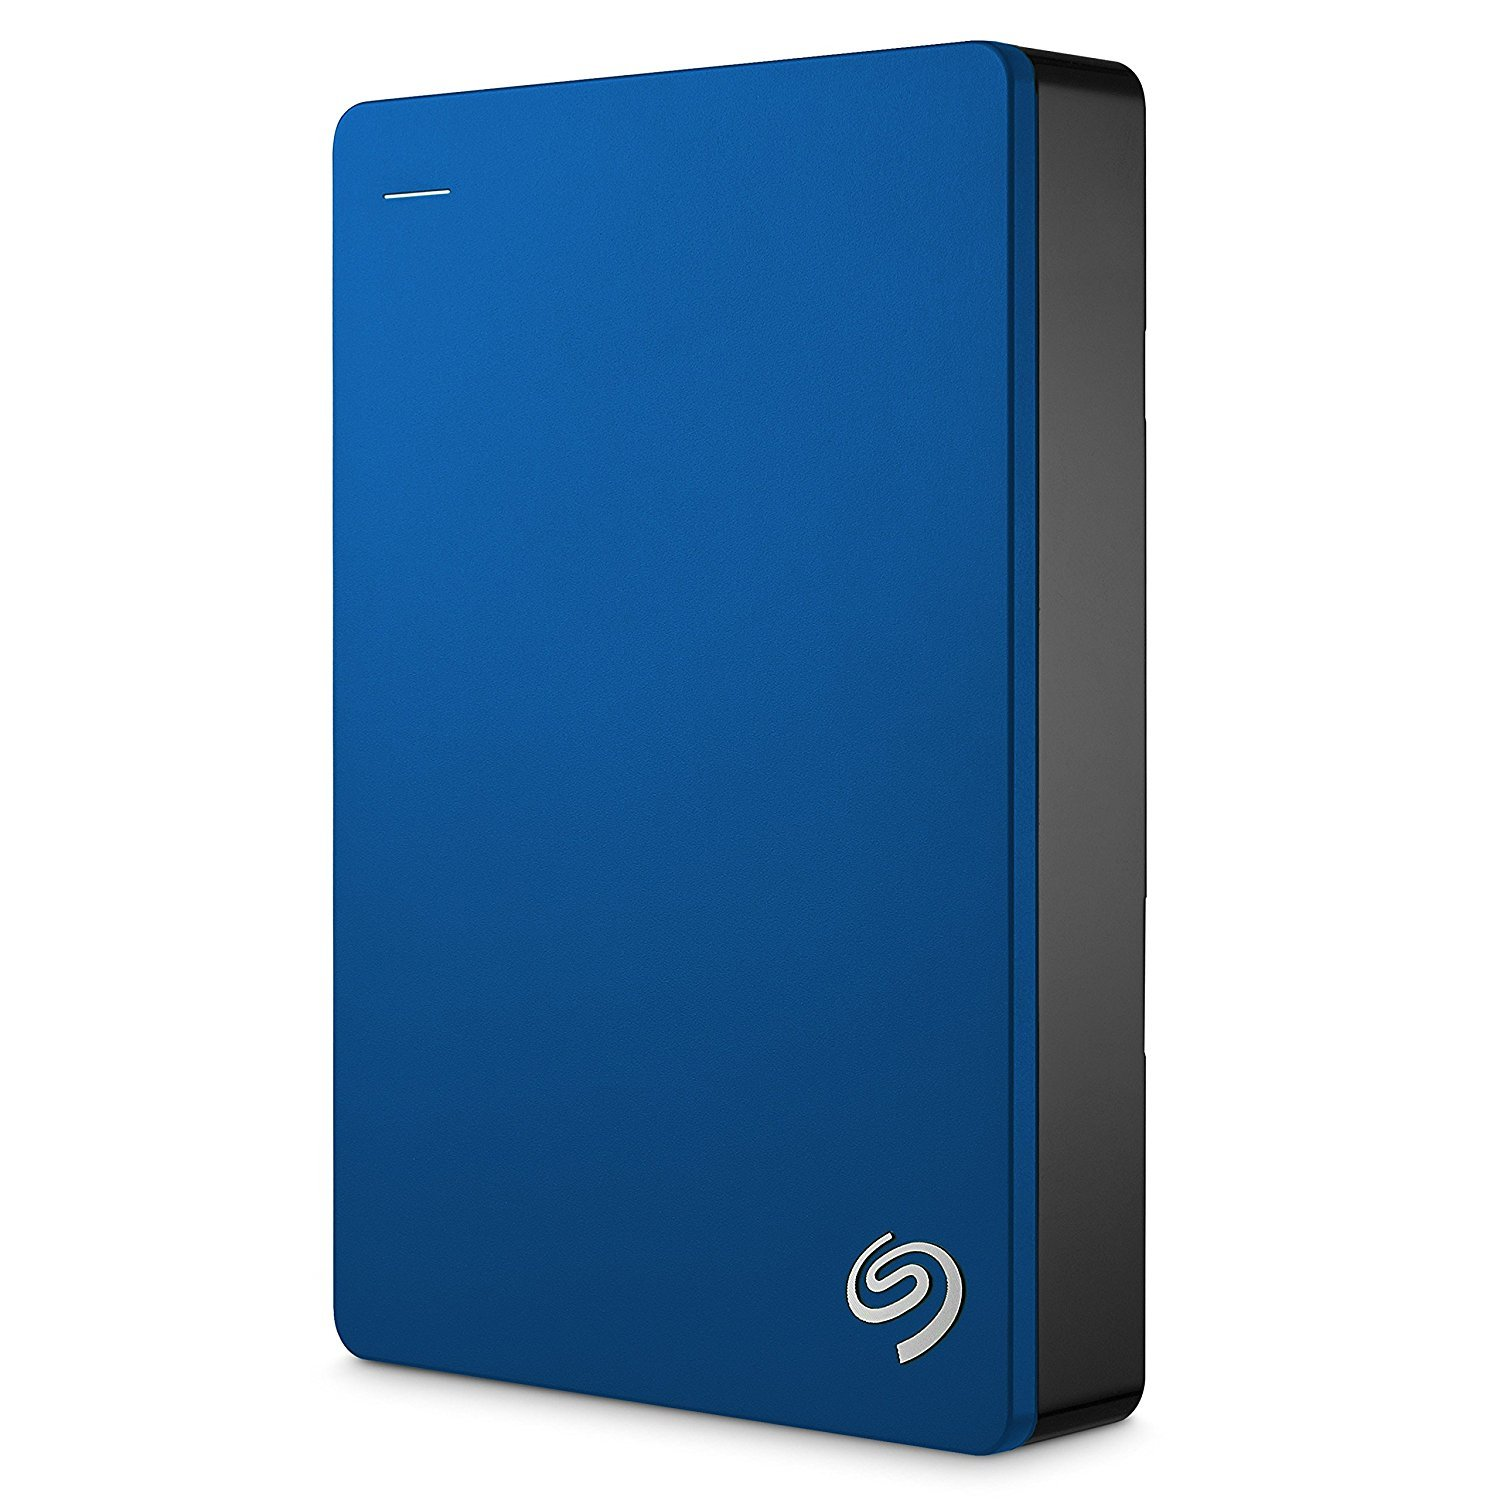 Seagate Backup Plus Slim Portable, External Mobile Hard Drive USB 3.0, 2,5 inch for PC & MAC & PS4 (Renewed), Capacity:1.000GB (1TB), Color Black by Seagate (Image #5)